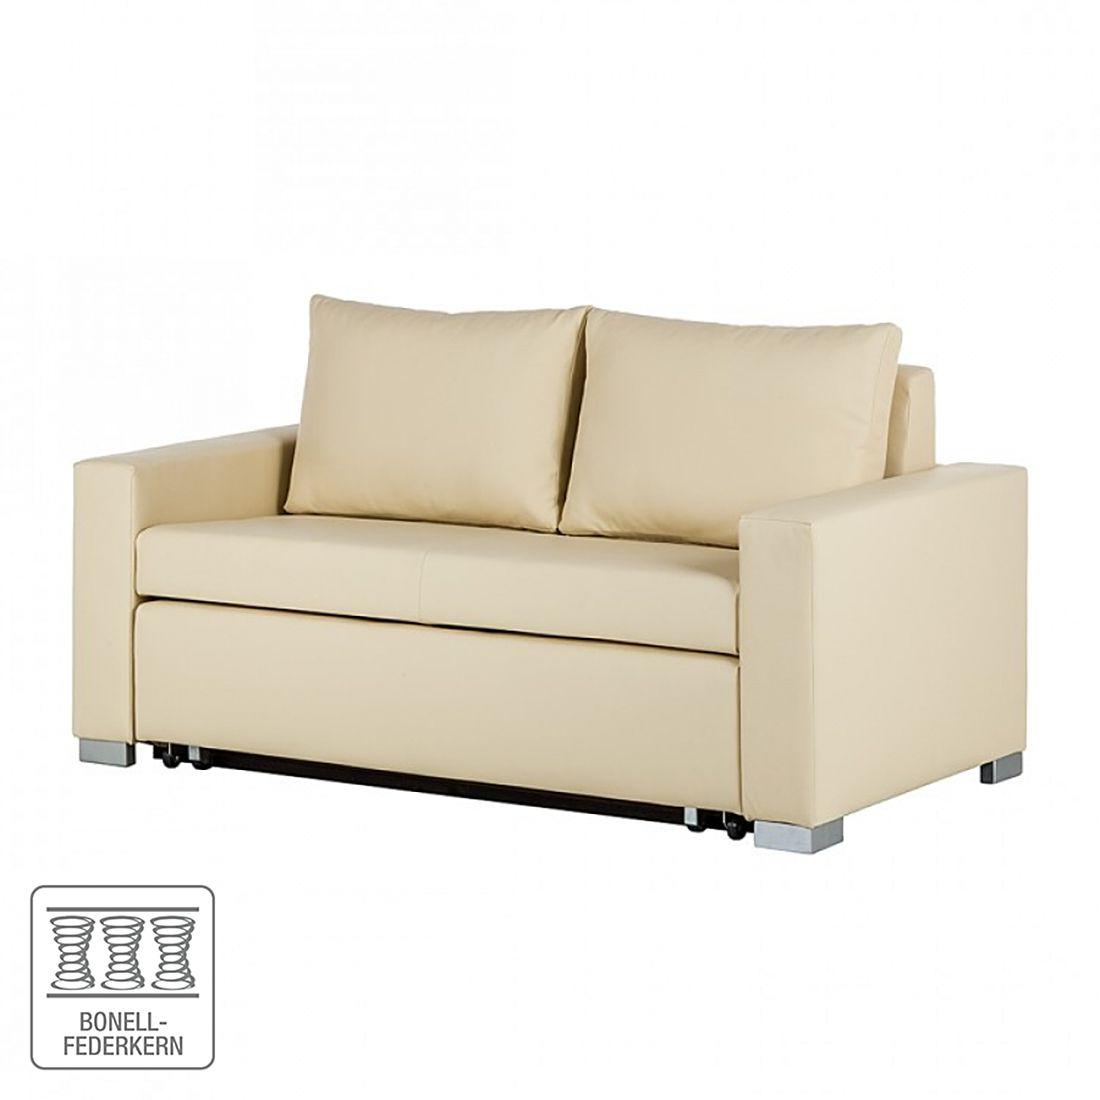 schlafsofa latina ii 150 cm bett sofa schlaf couch schlaffunktion schlafcouch ebay. Black Bedroom Furniture Sets. Home Design Ideas